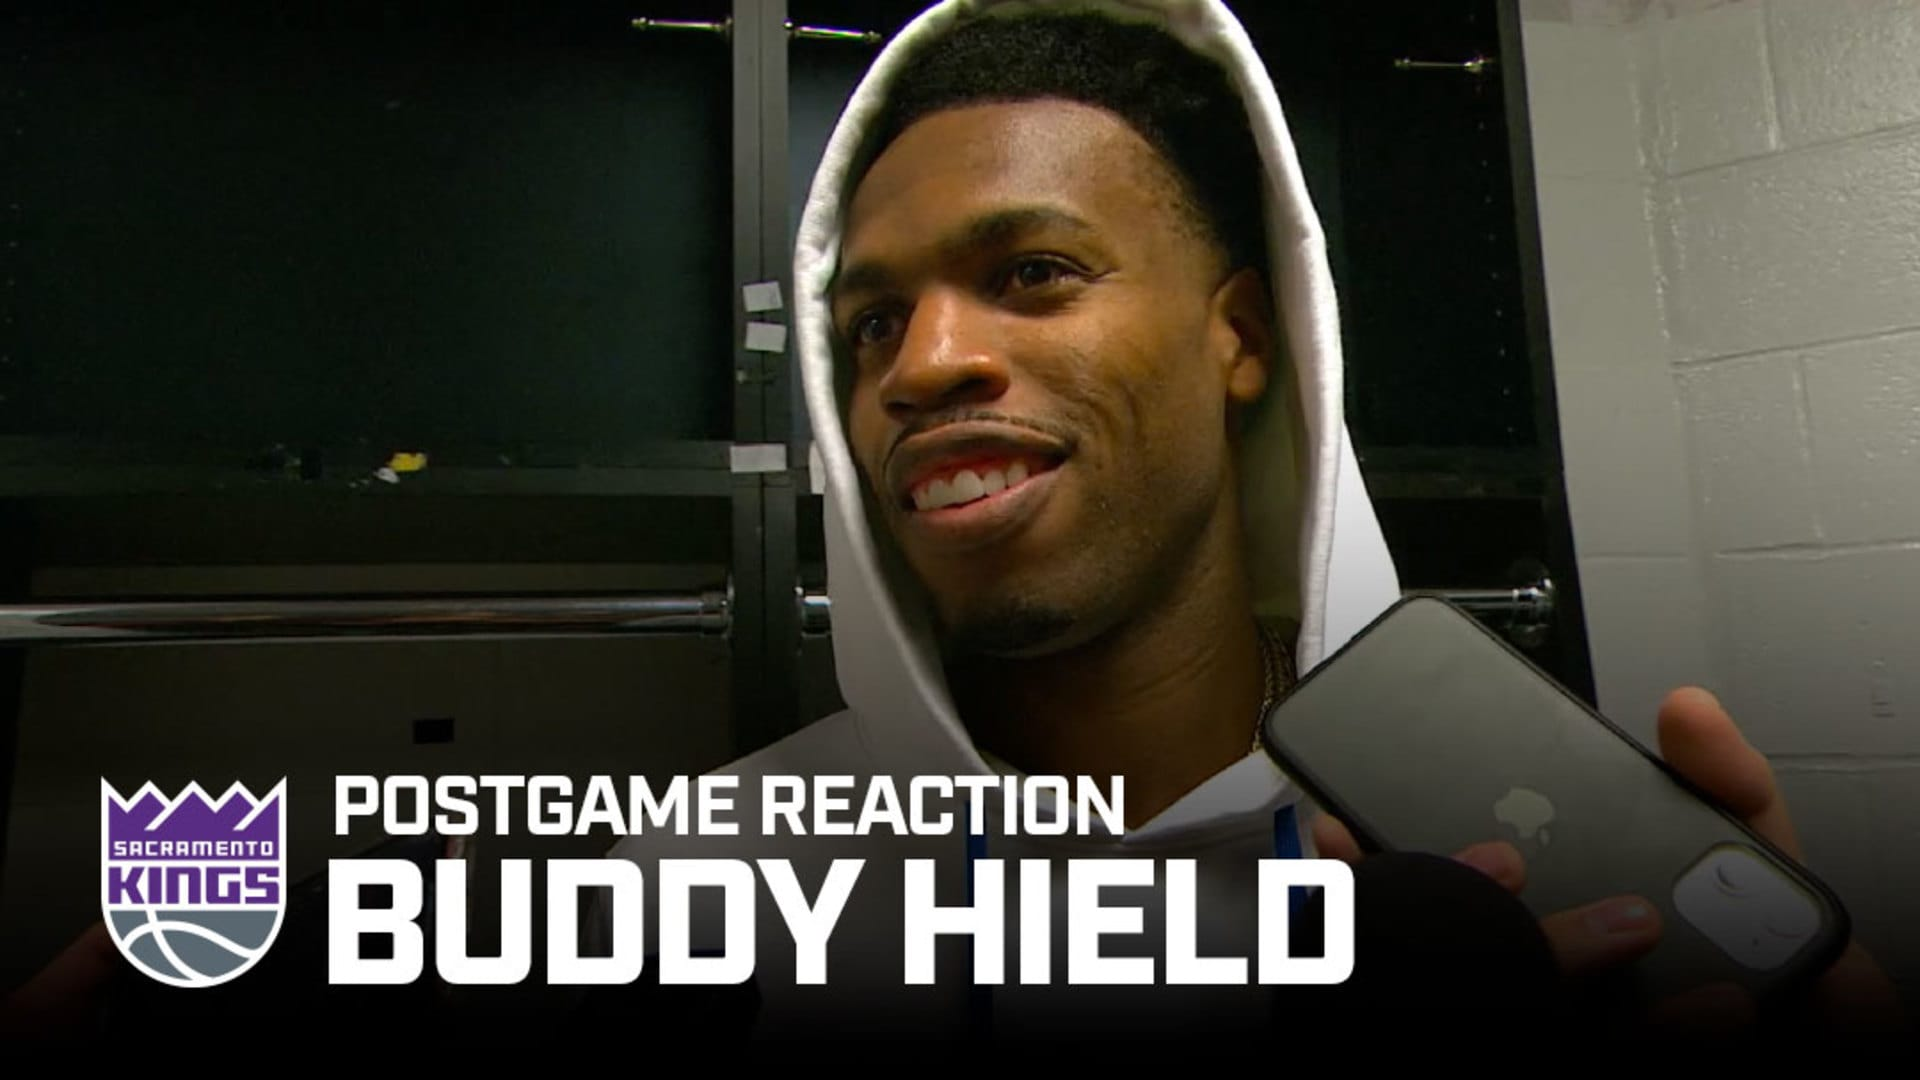 'It's a Great Opportunity, Great Career-High' | Buddy Hield Postgame Reaction 11.26.19